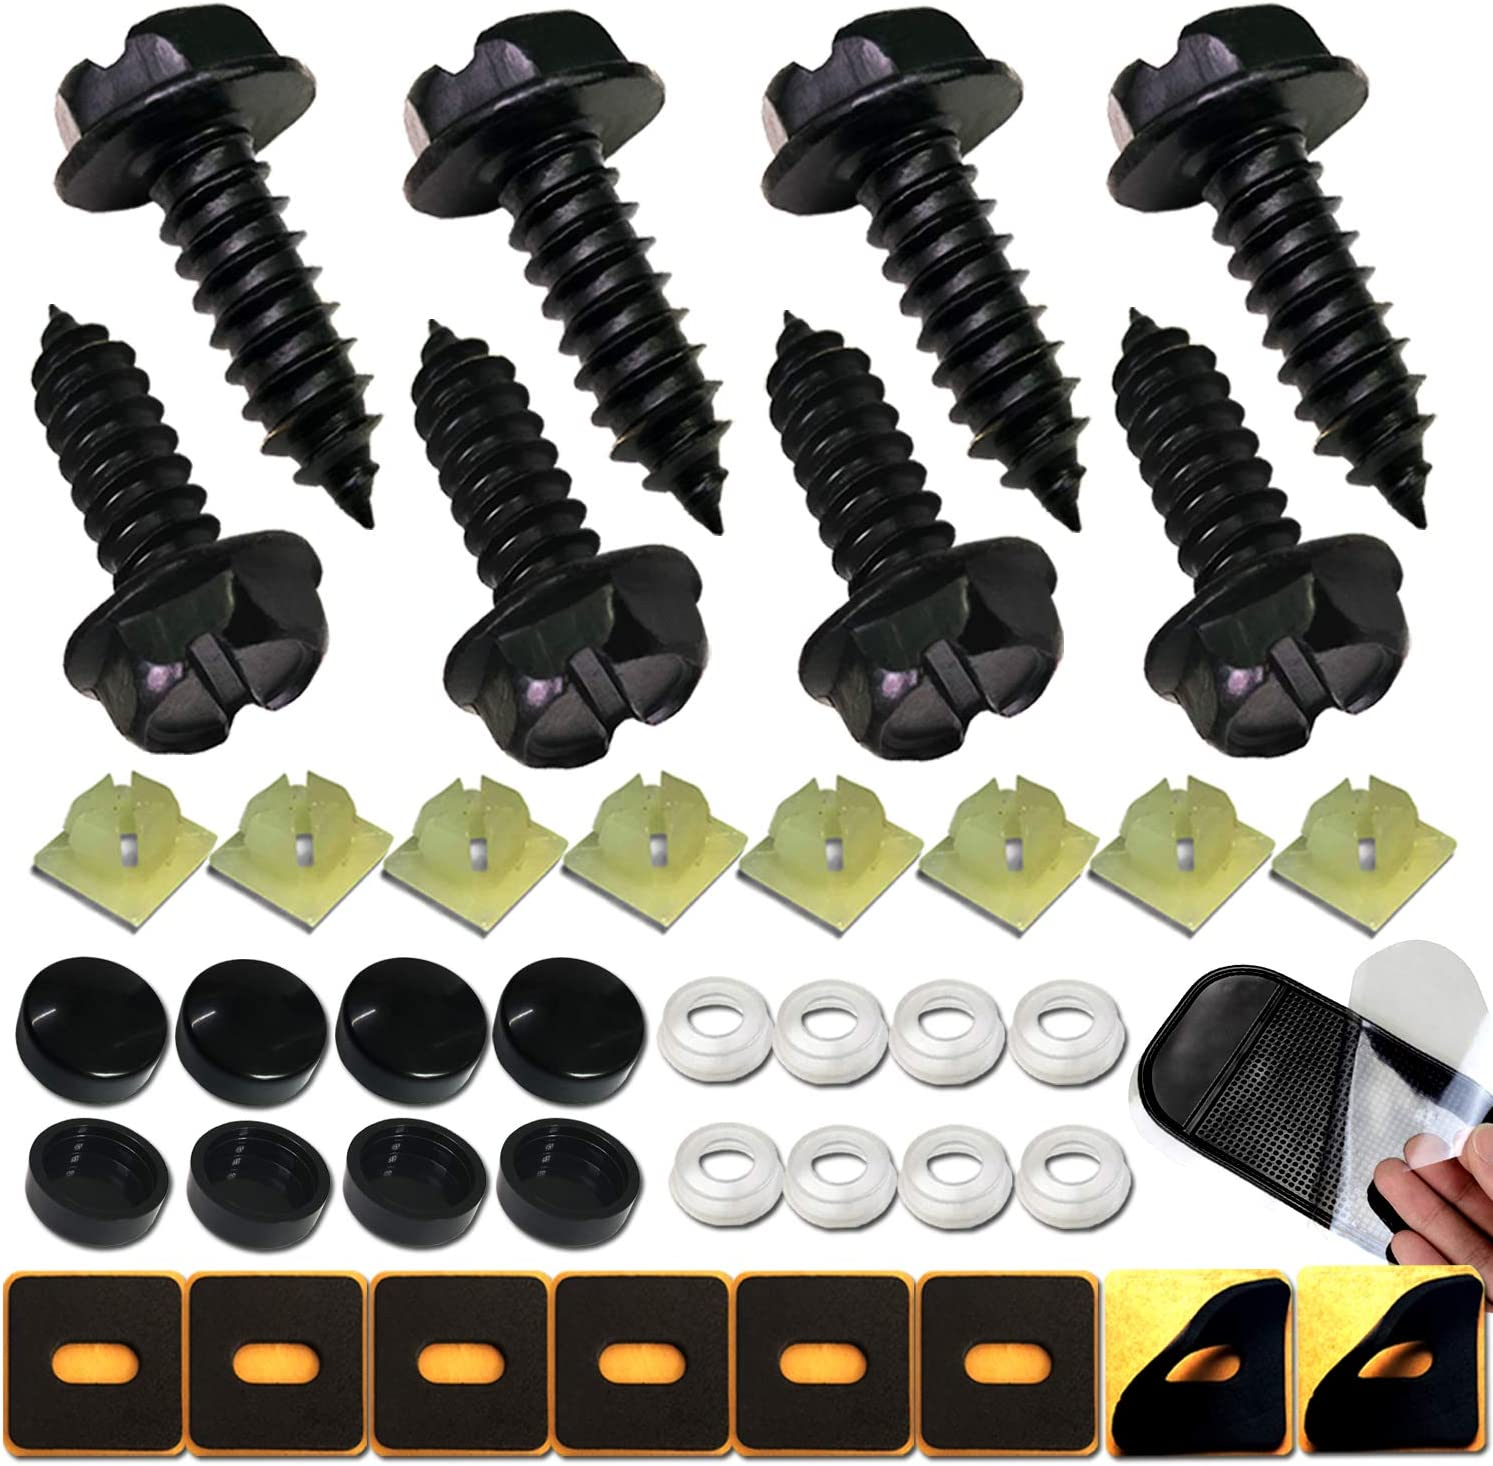 Black 4 PCS Security Screw Caps Bolt Covers for Car Truck License Plate Frame